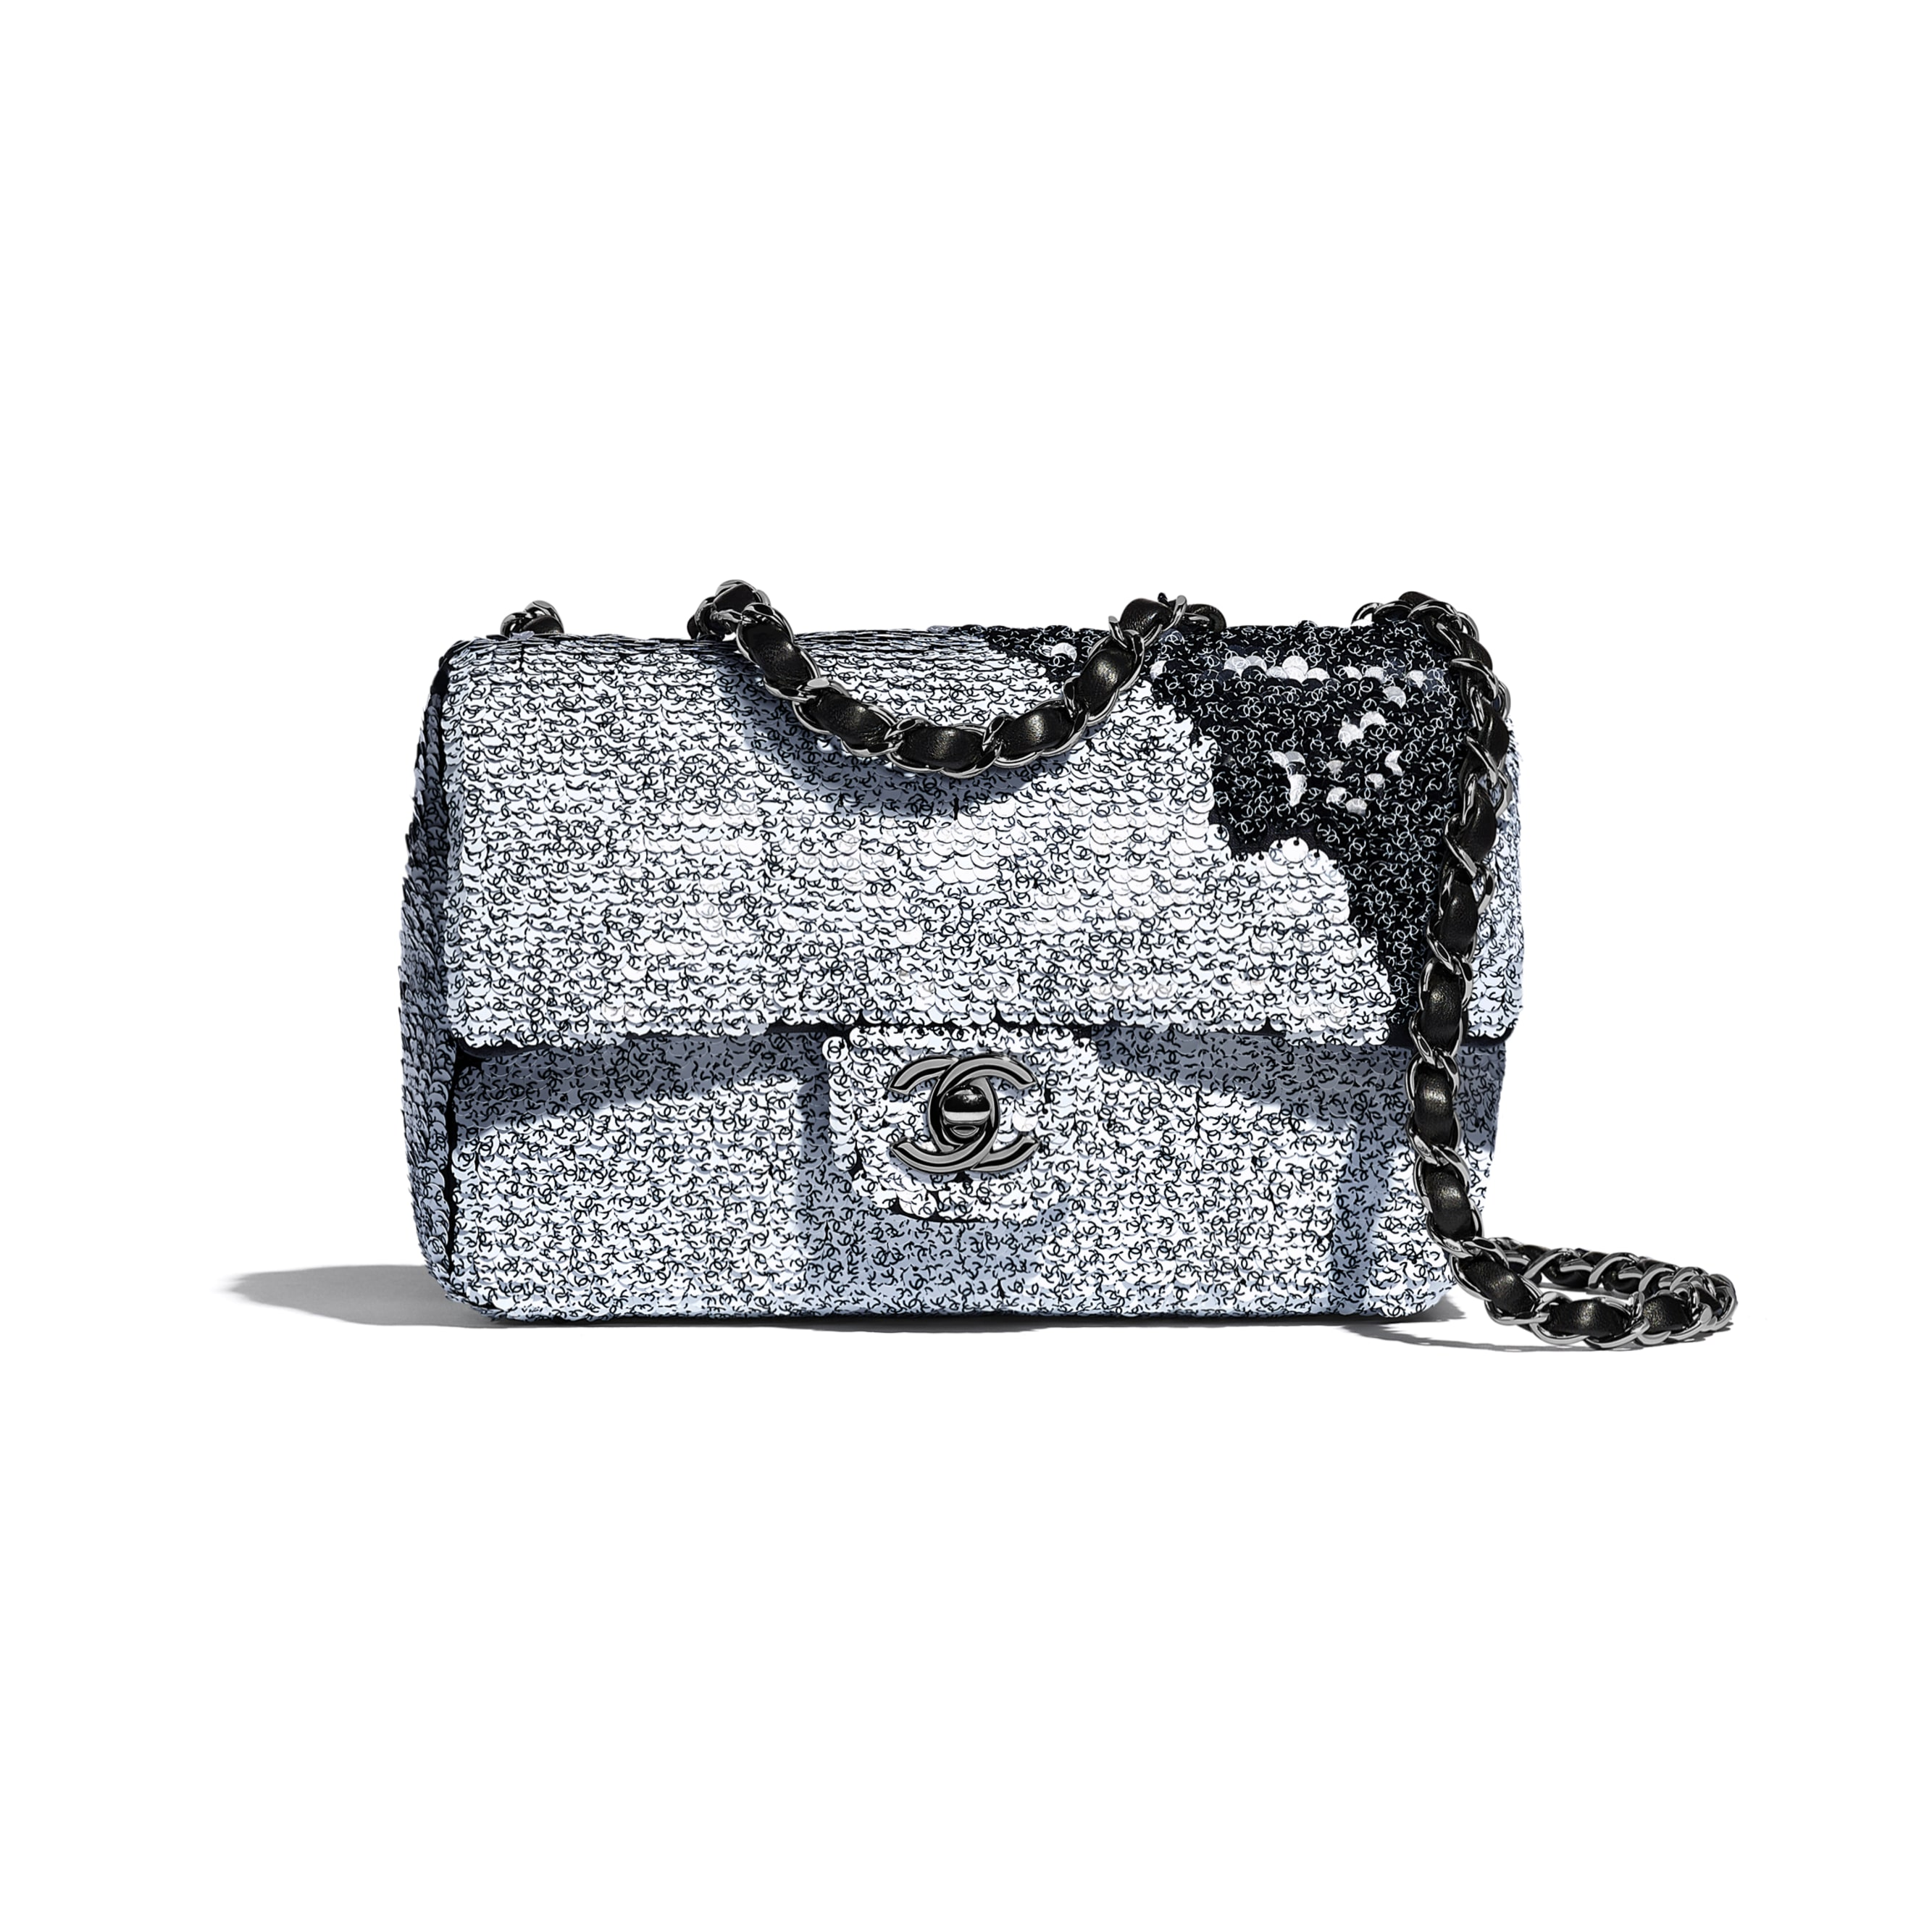 Flap Bag - White & Black - Sequins, Lambskin & Ruthenium-Finish Metal - Default view - see standard sized version